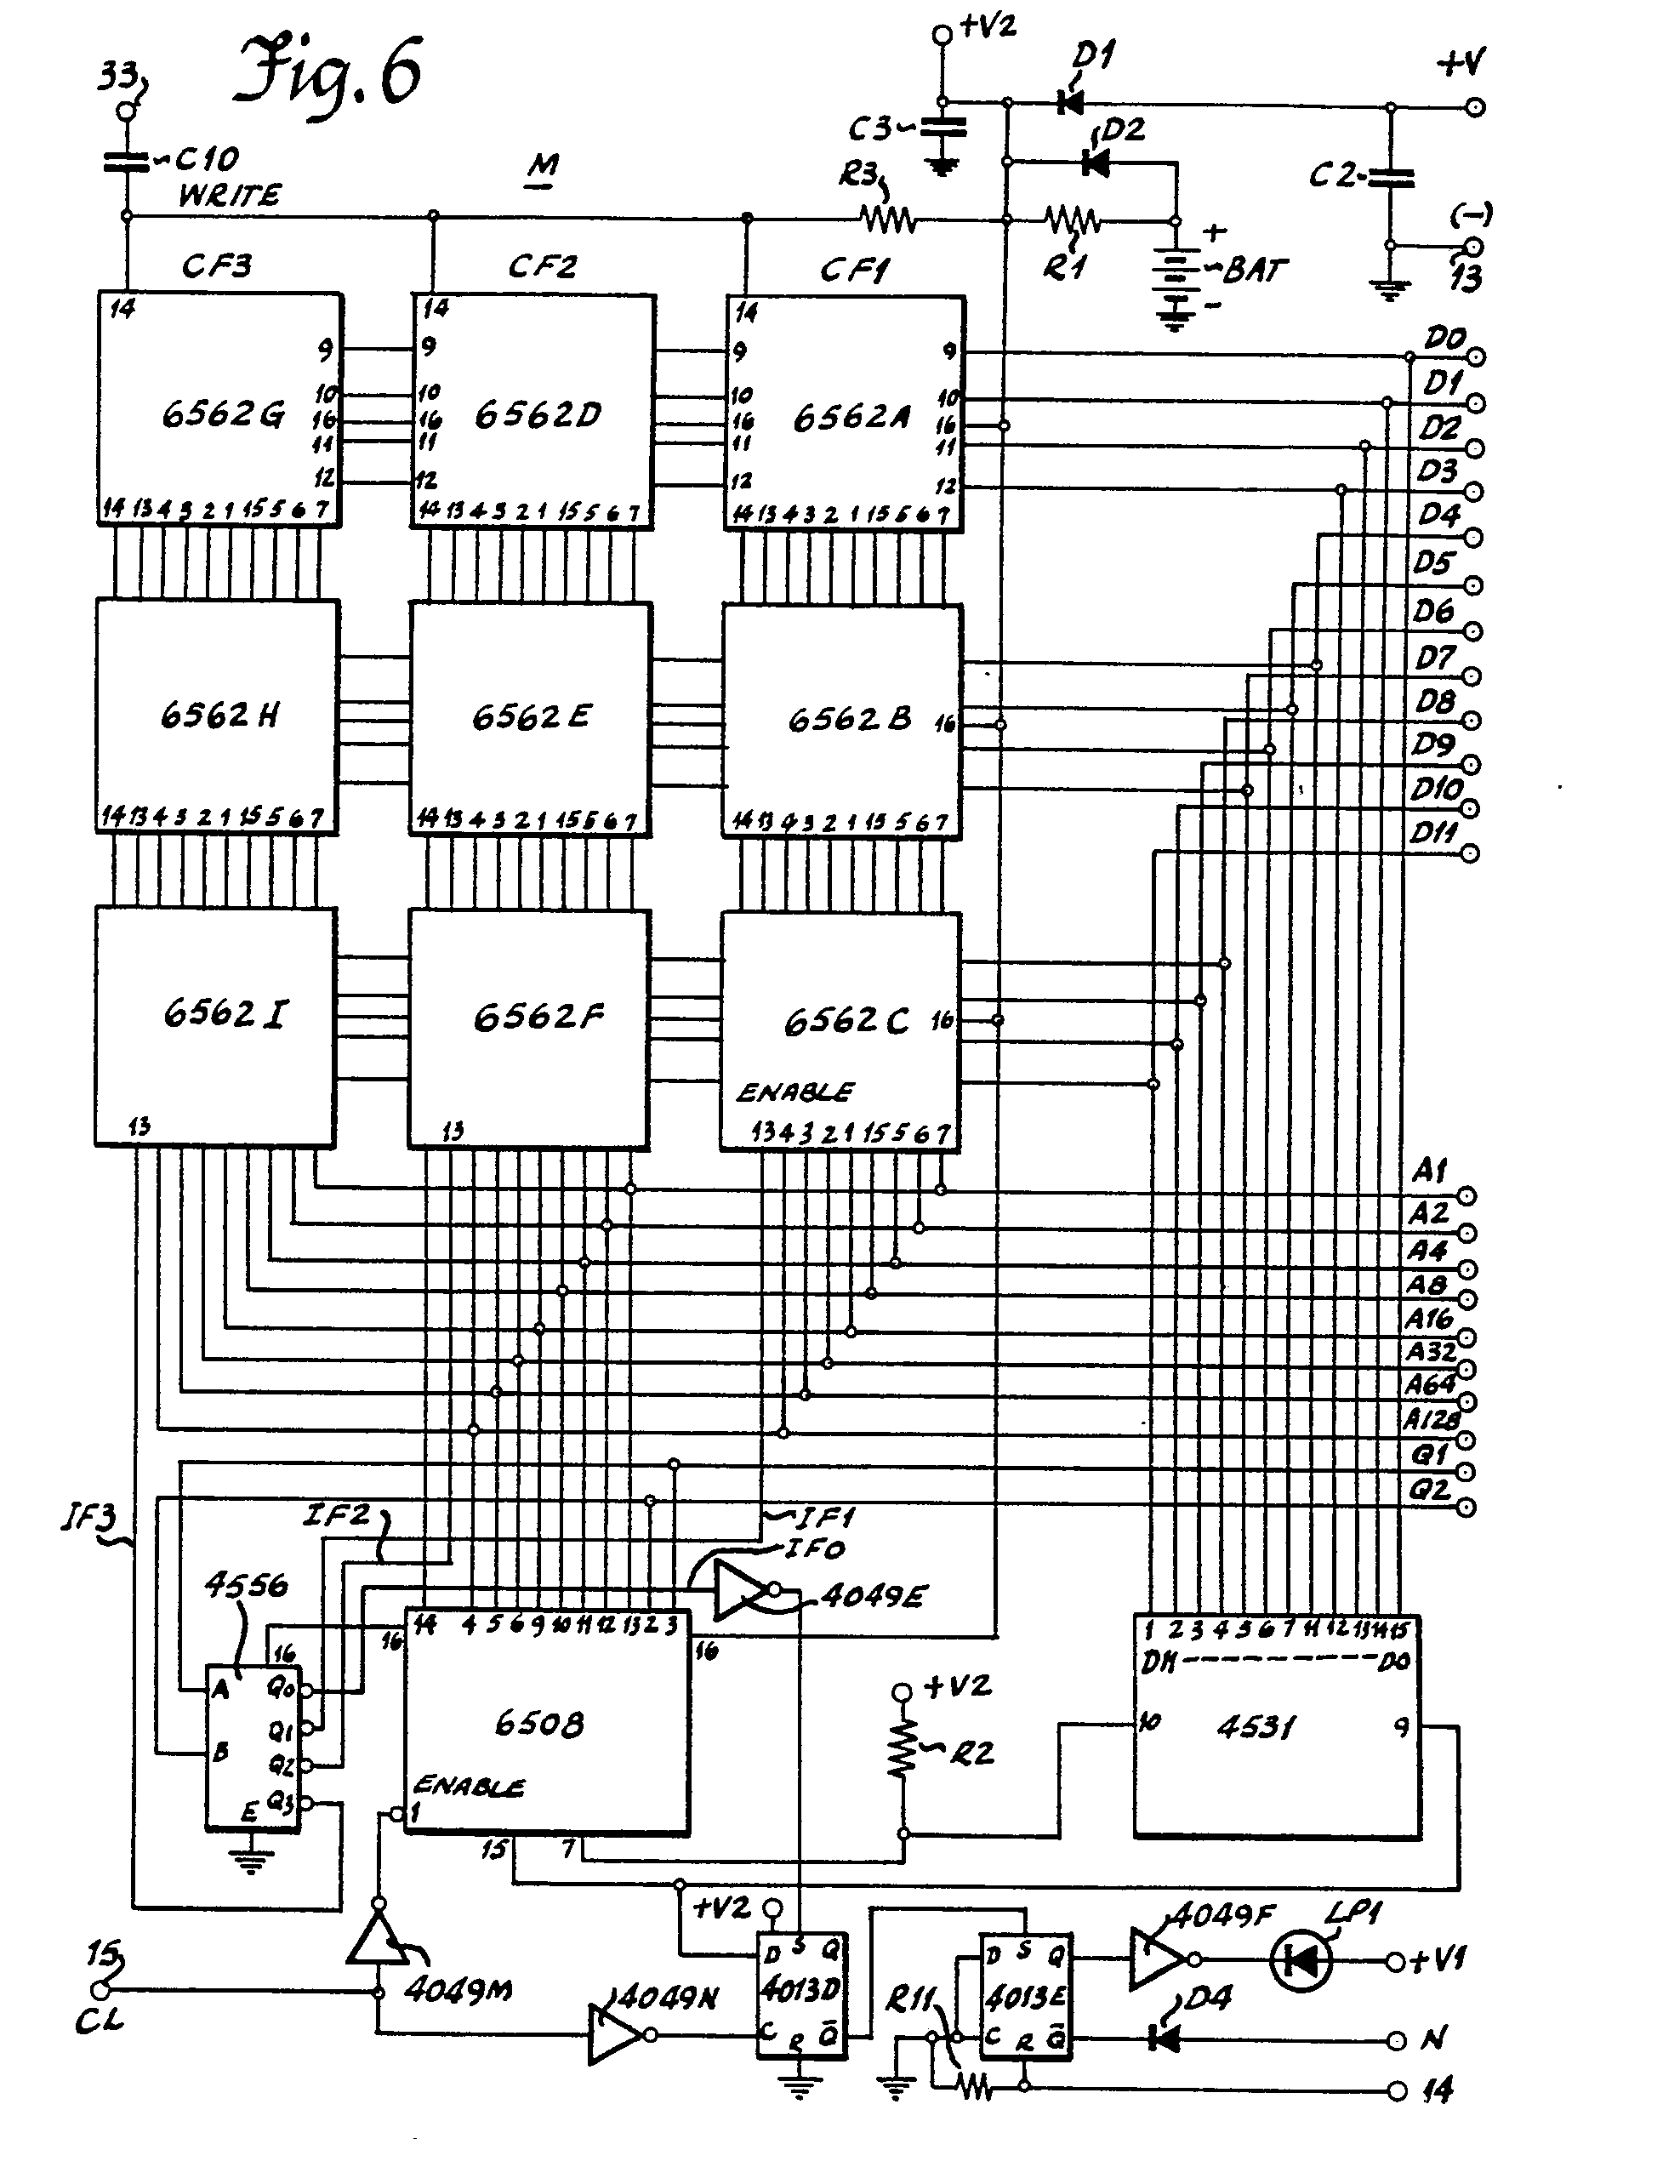 Wiring Diagram Normally Closed further Cutler Hammer Sv9000 Wiring Diagram as well Eaton Wiring Diagram besides 42ef P2mnb A2 besides Azm415 Sts30 01. on cutler hammer switches